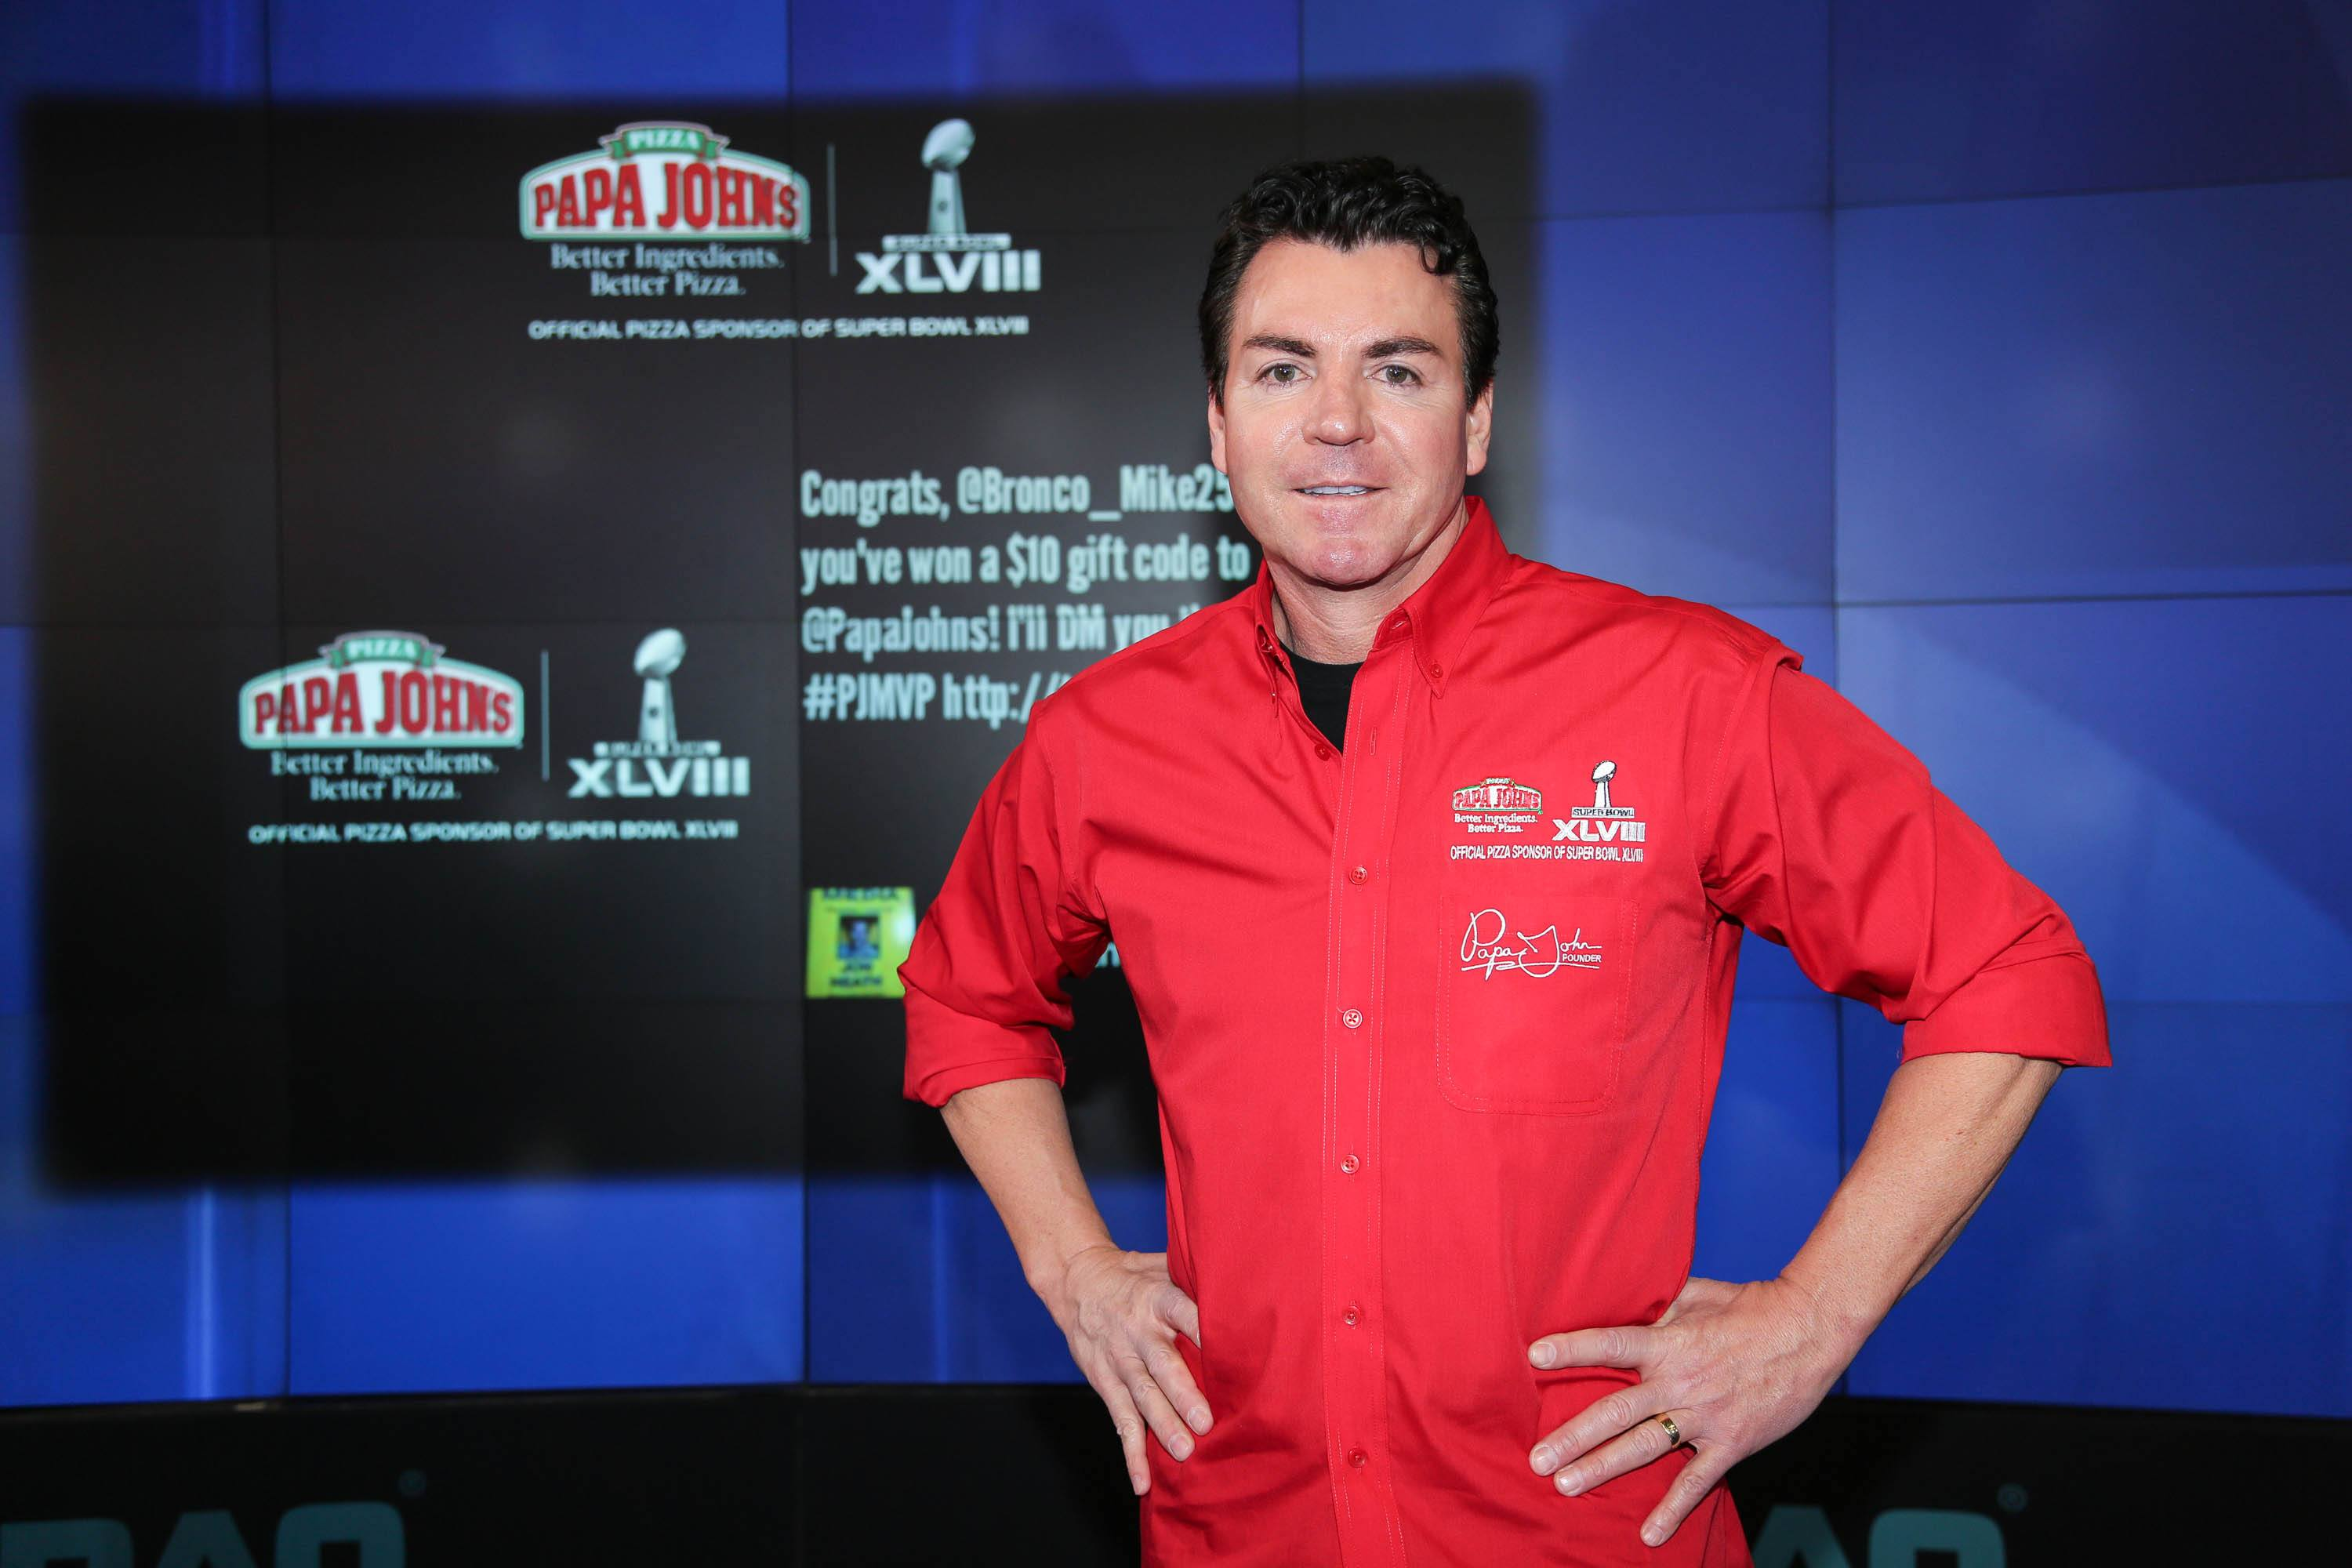 John H. Schnatter, Founder, Chairman & CEO of Papa John's Pizza